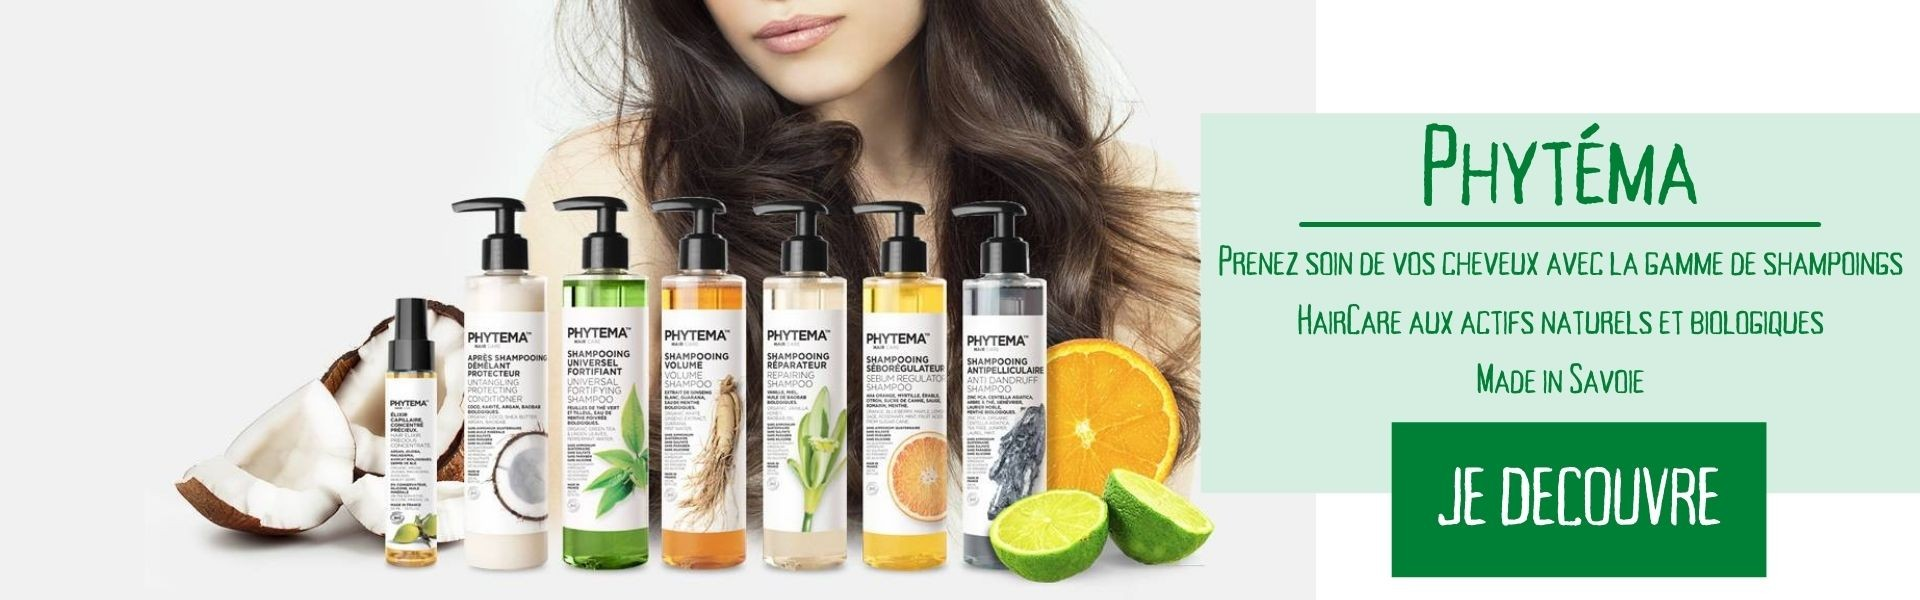 Phytema Cosmetiques